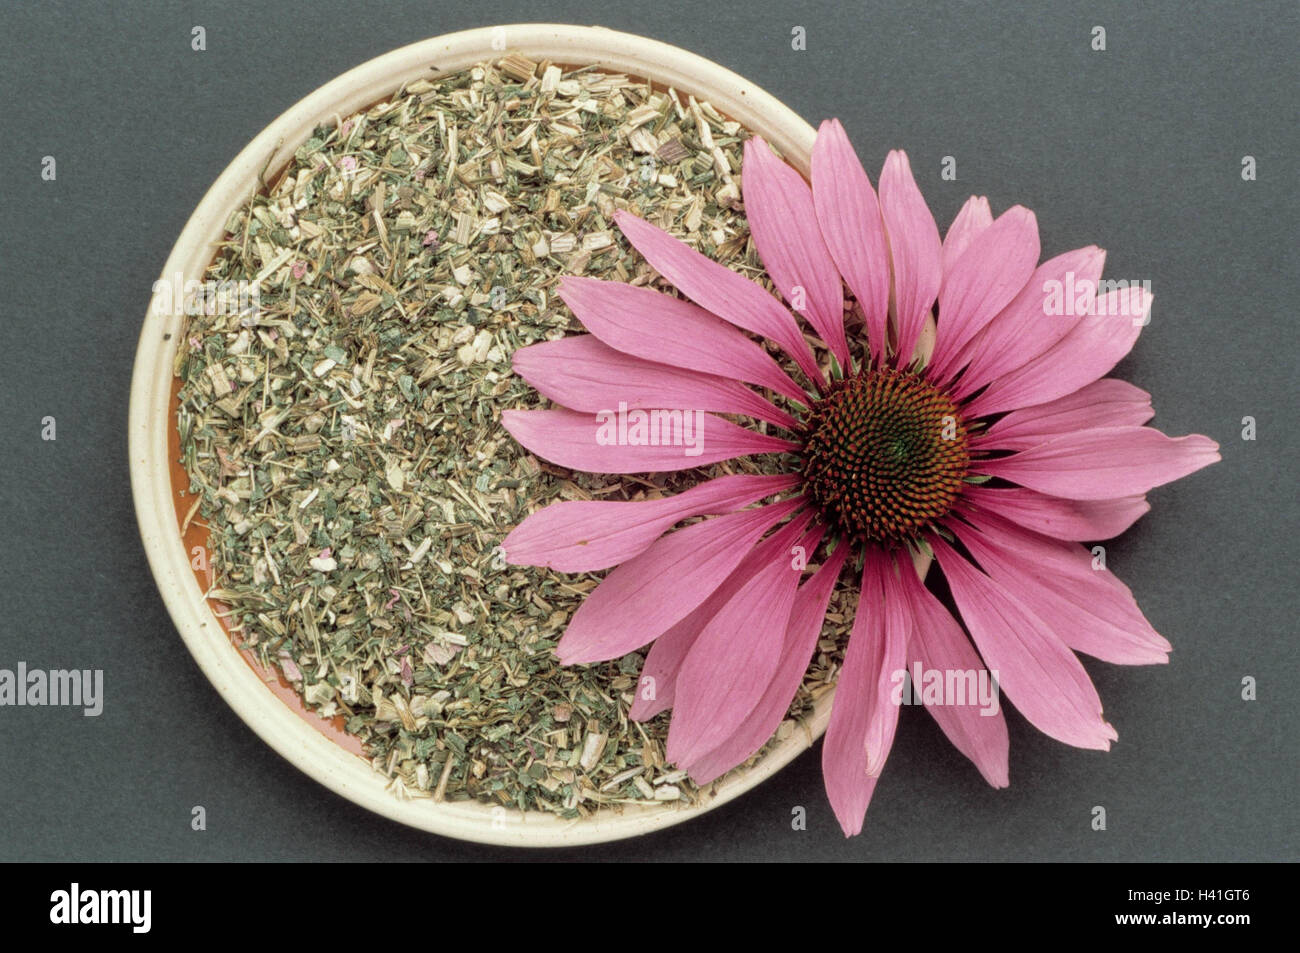 Medicinal plants, red solar hat, Echinacea purpurea, dryly, dished plates, blossom plants, medicinal plants, herbs, - Stock Image